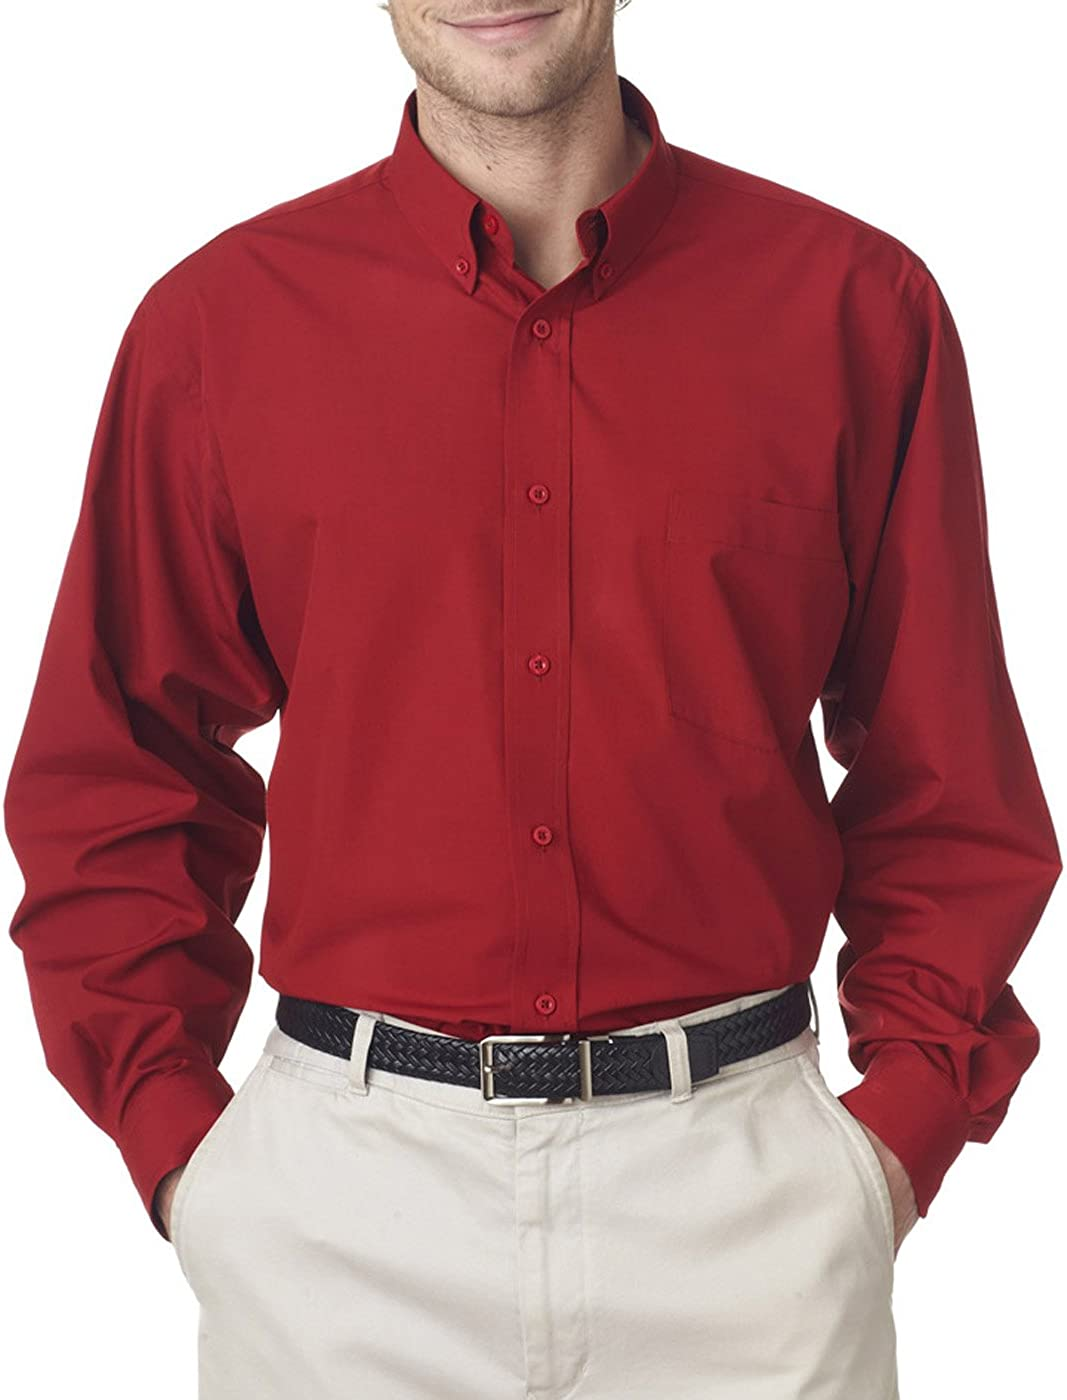 Red UltraClub Mens Easy Care Broadcloth Wrinkle Free Shirt XXX Large